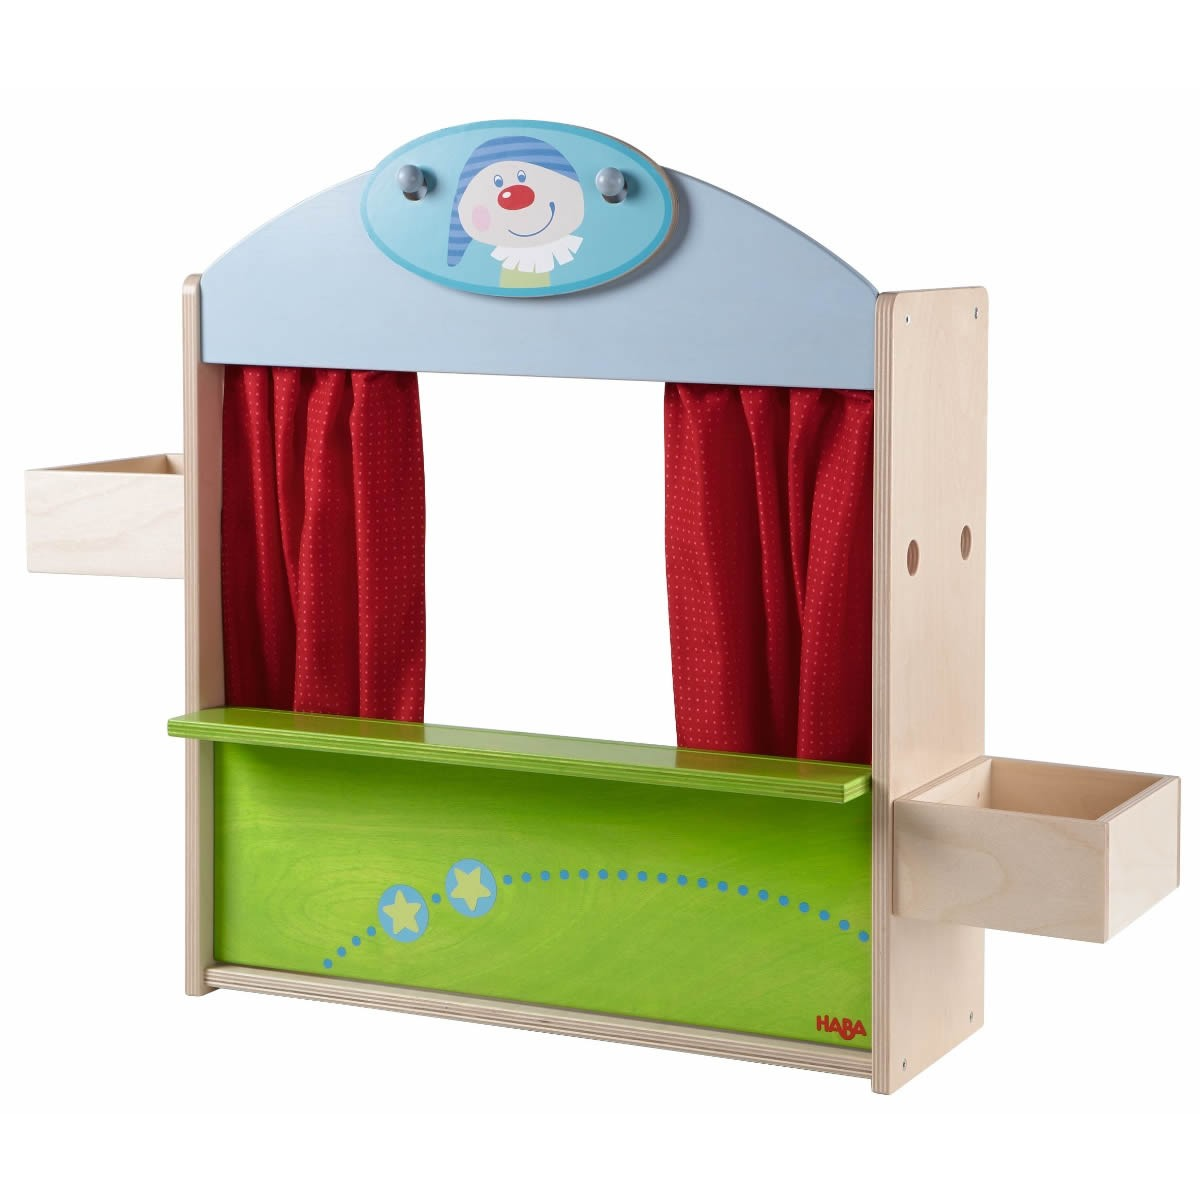 Haba Tabletop Puppet Theatre Amp Shop